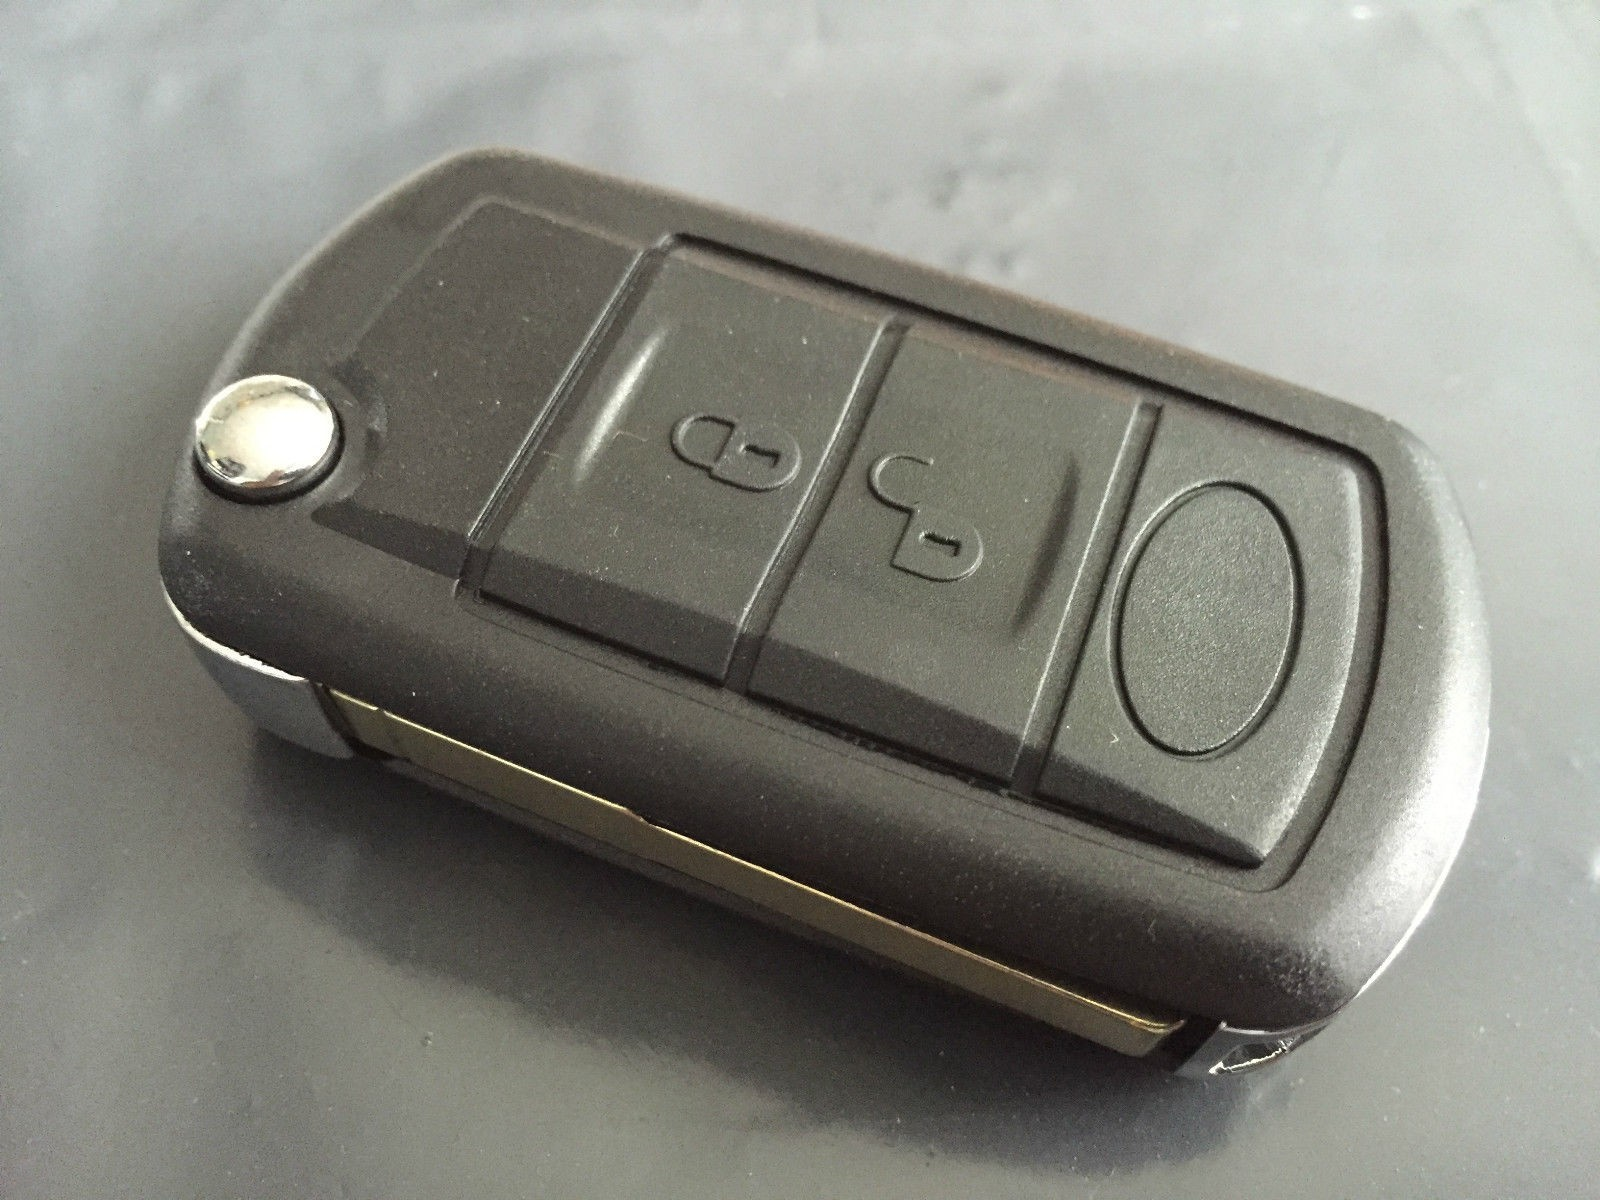 3 Button Shell Case for Land Rover Discovery 3 Range Rover Sport Remote Key